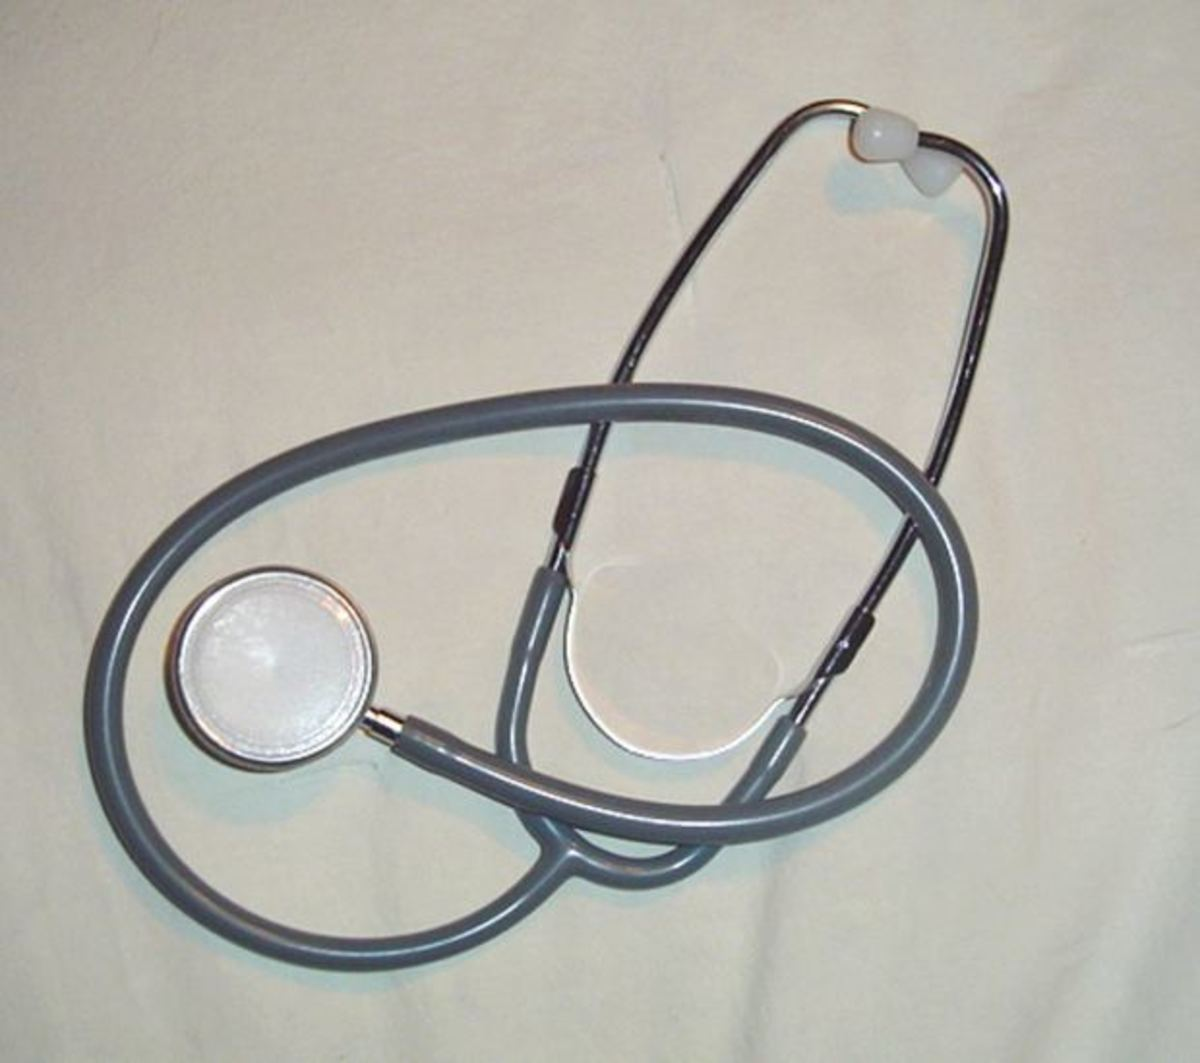 One way pneumonia can be detected is by listening for crackles in the lungs with a stethoscope